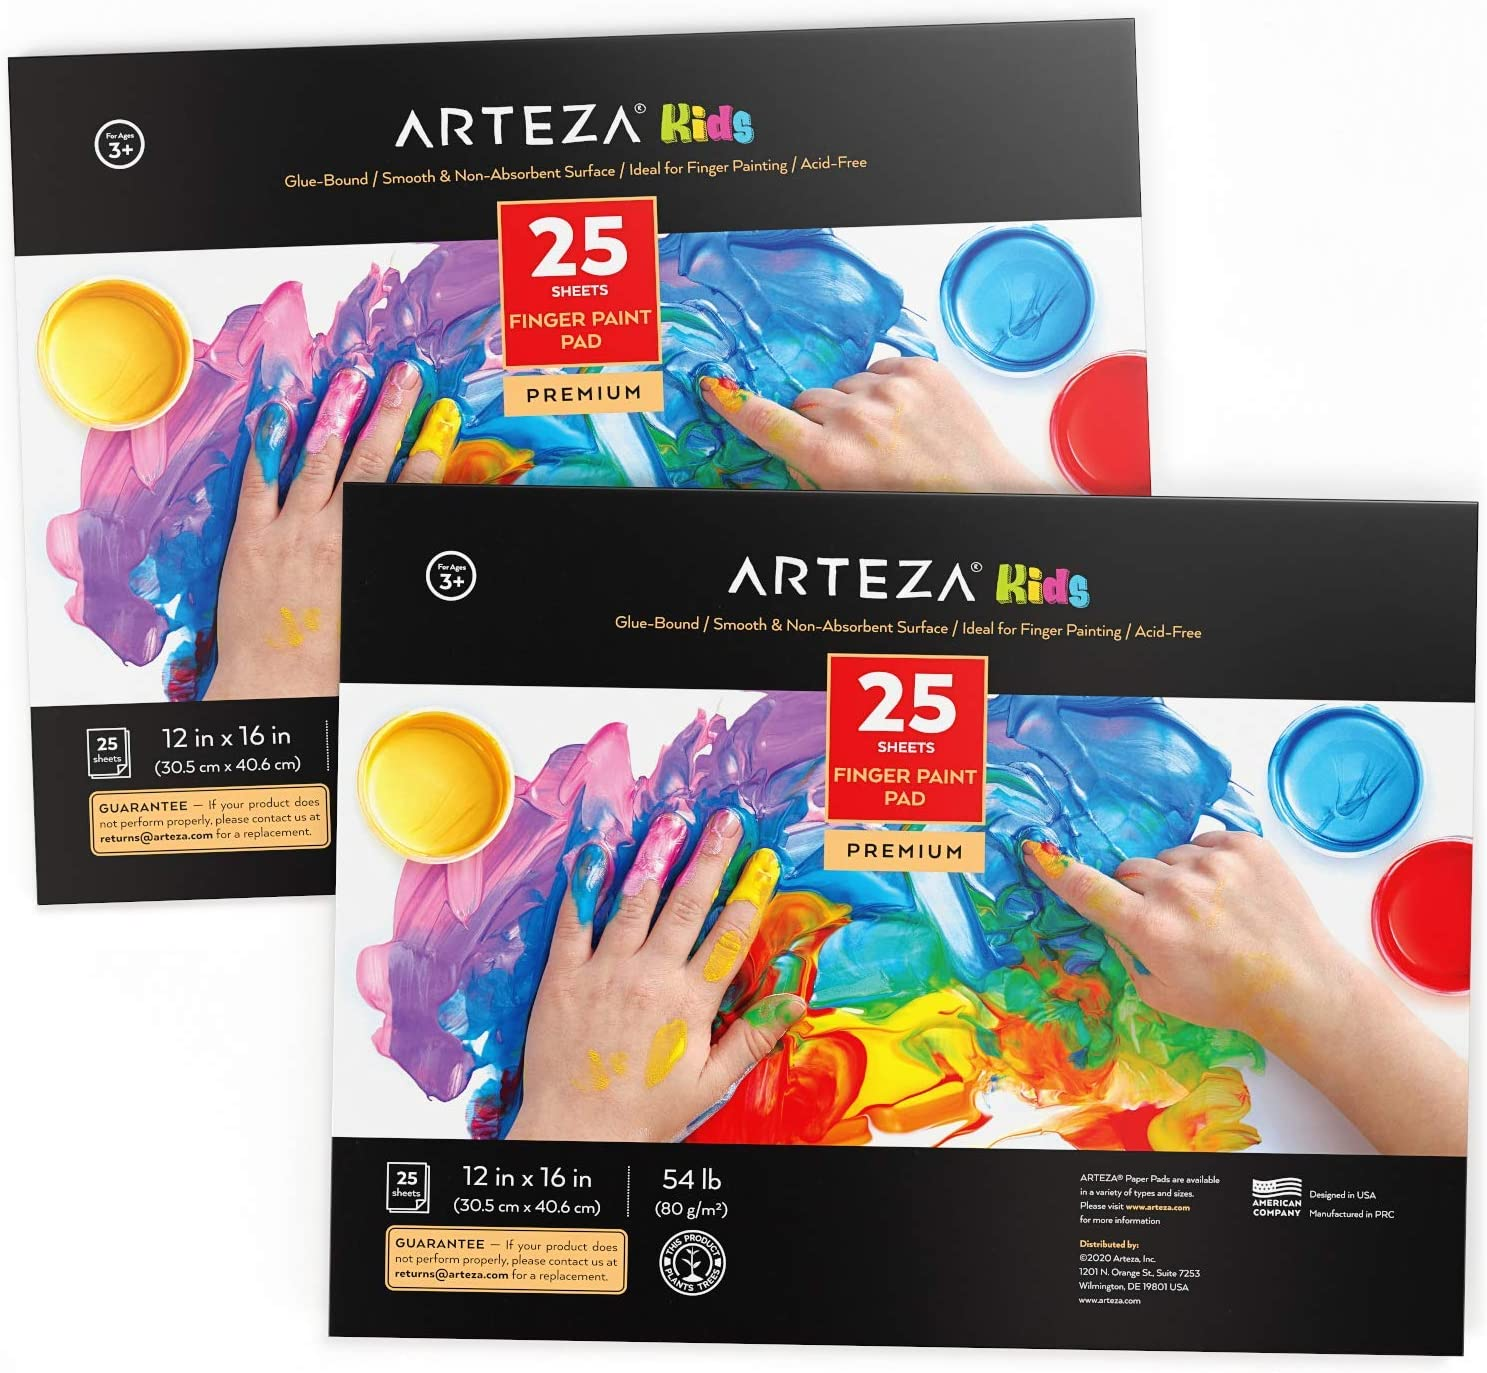 """Arteza 12x16"""" Finger Paint Paper Pad, Pack of 2, 50 Sheets (54lb/80gsm), 25 Sheets Each, Glue-Bound, Satin Finger Paint Paper for Toddlers, for Finger Painting and Mixed Media: Home Improvement"""